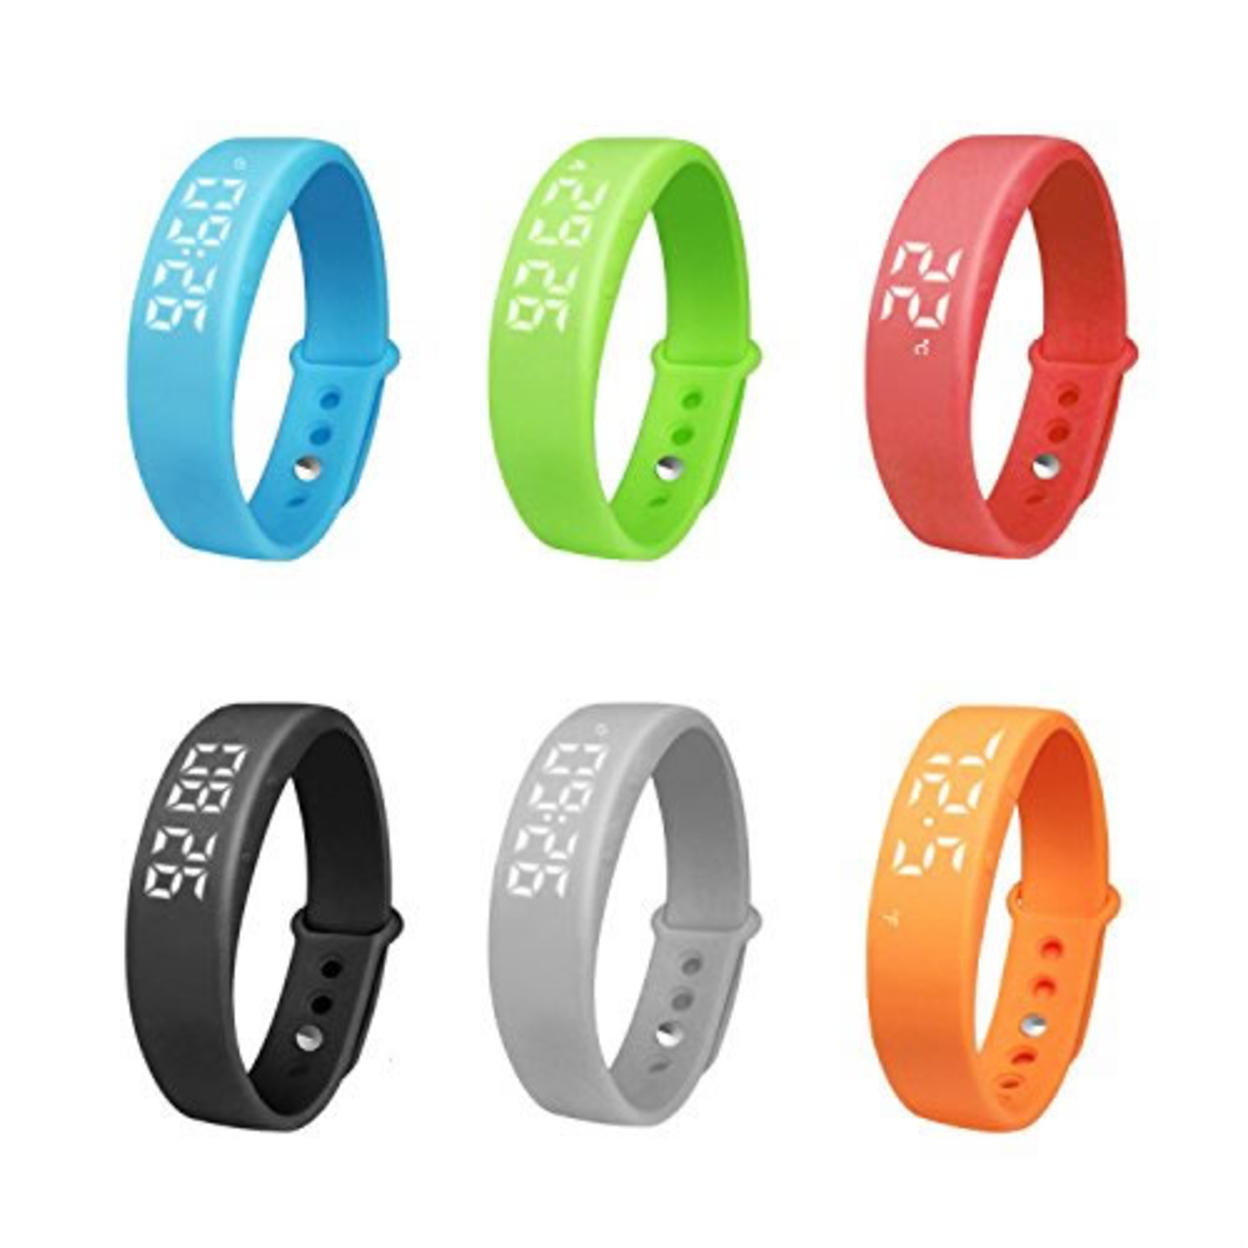 Smart-A-Rolla Simple Fitness Tracker Bracelet Style Watch And Pedometer Works w/o Smartphone - Sky Blue 562e4c4d503d6f3c498b45e3